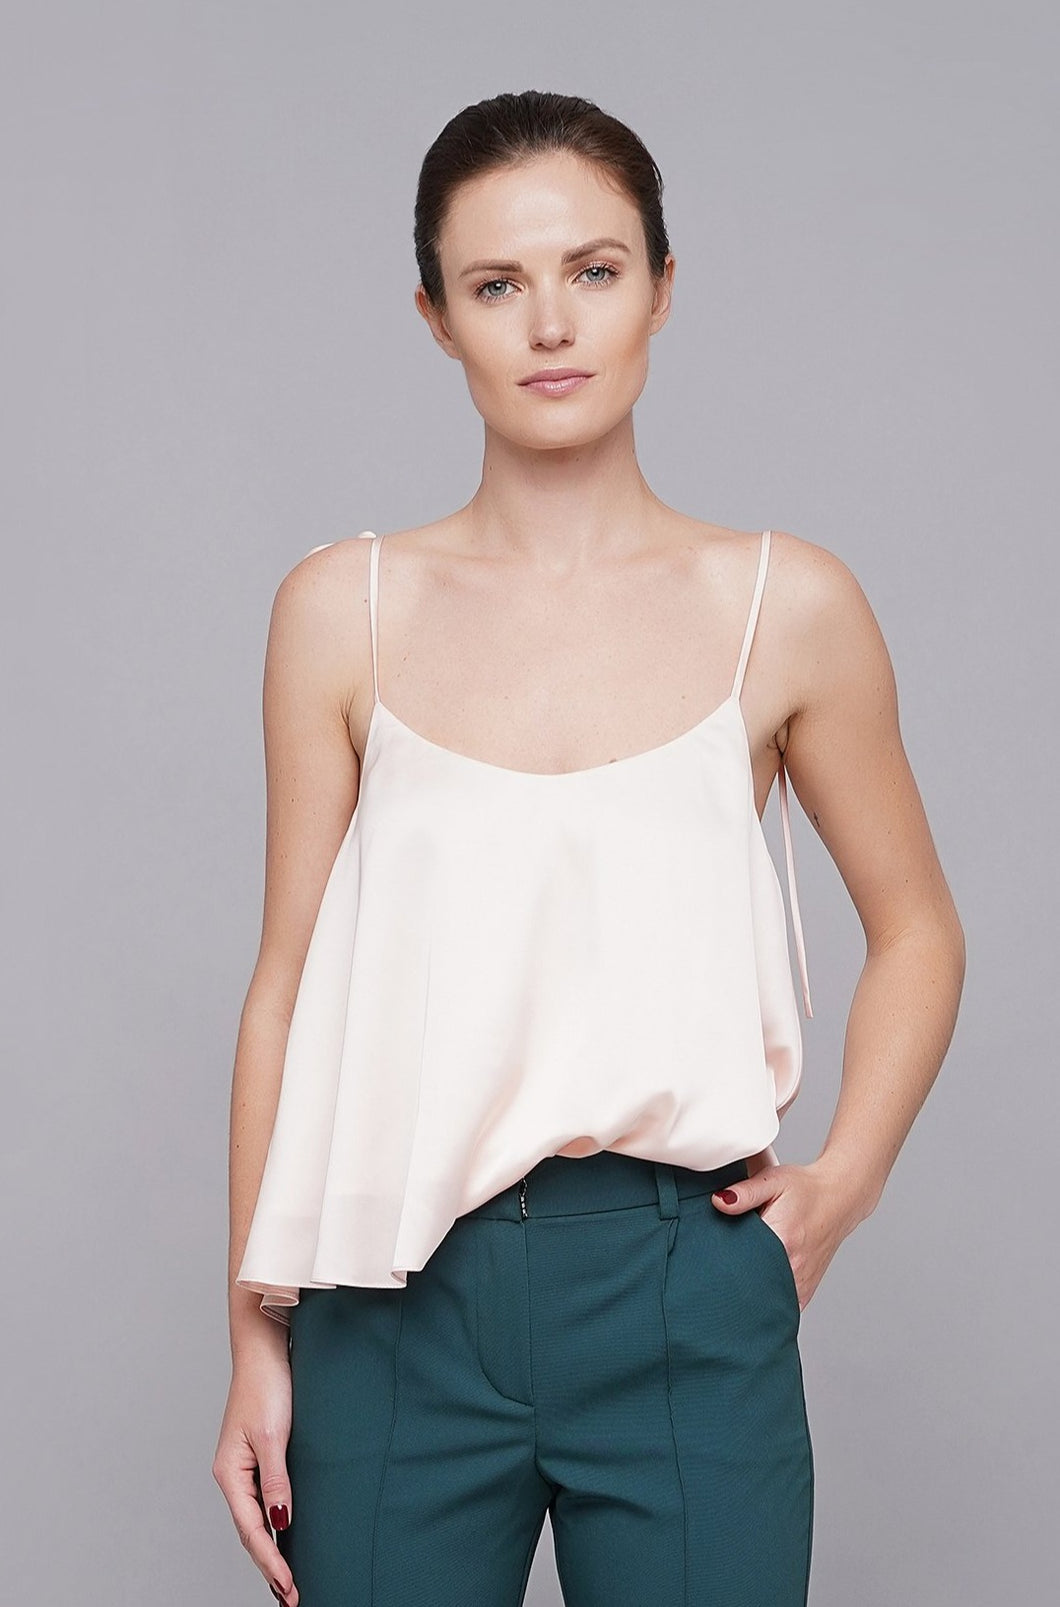 White camisole slip top for women